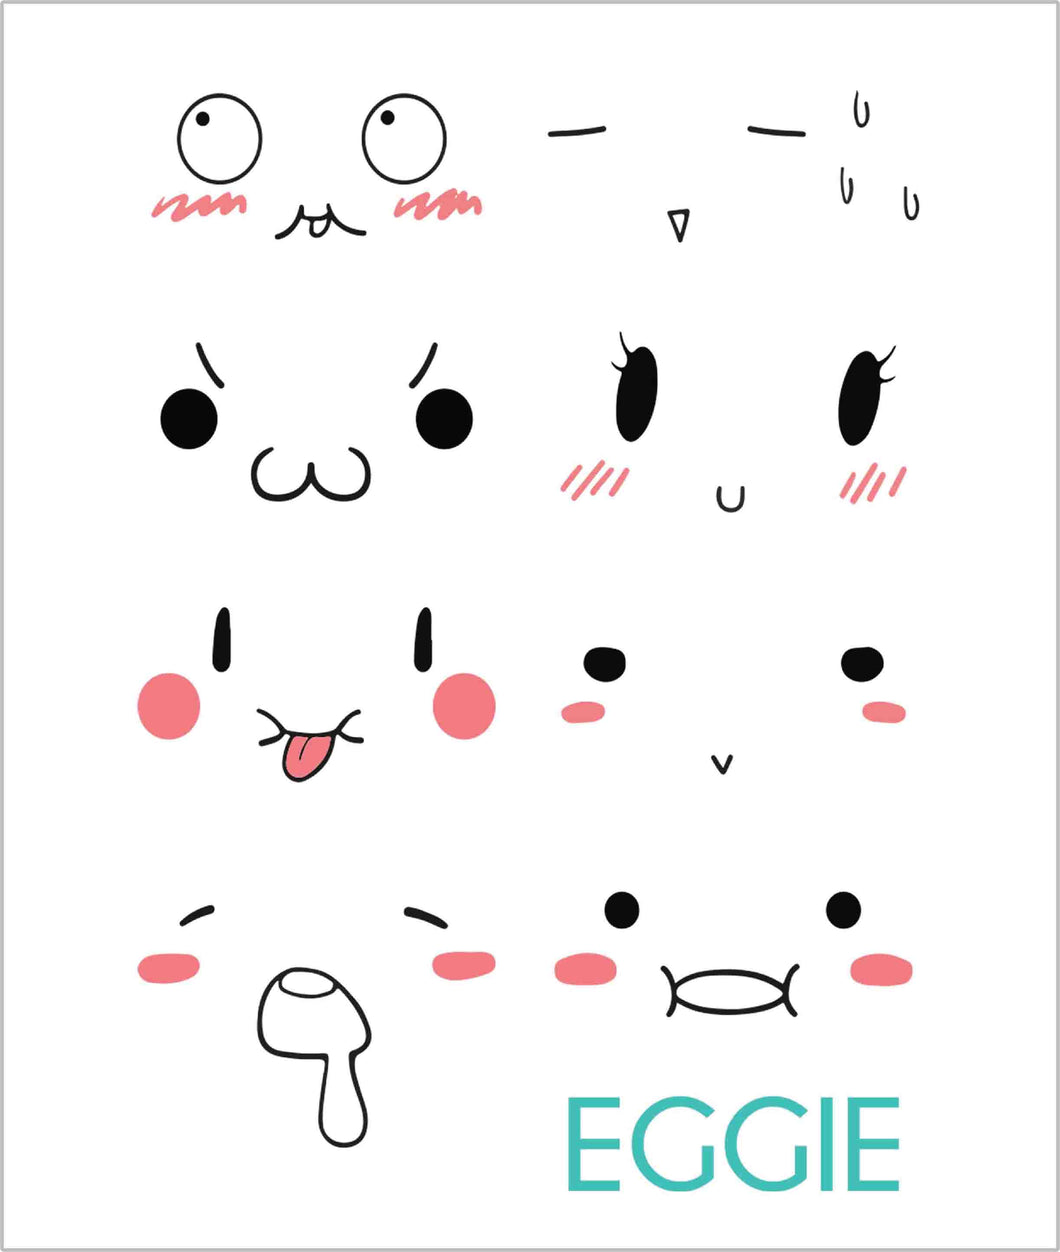 Waterproof Emoji Sticker [A MUST-HAVE FOR EGGIE]